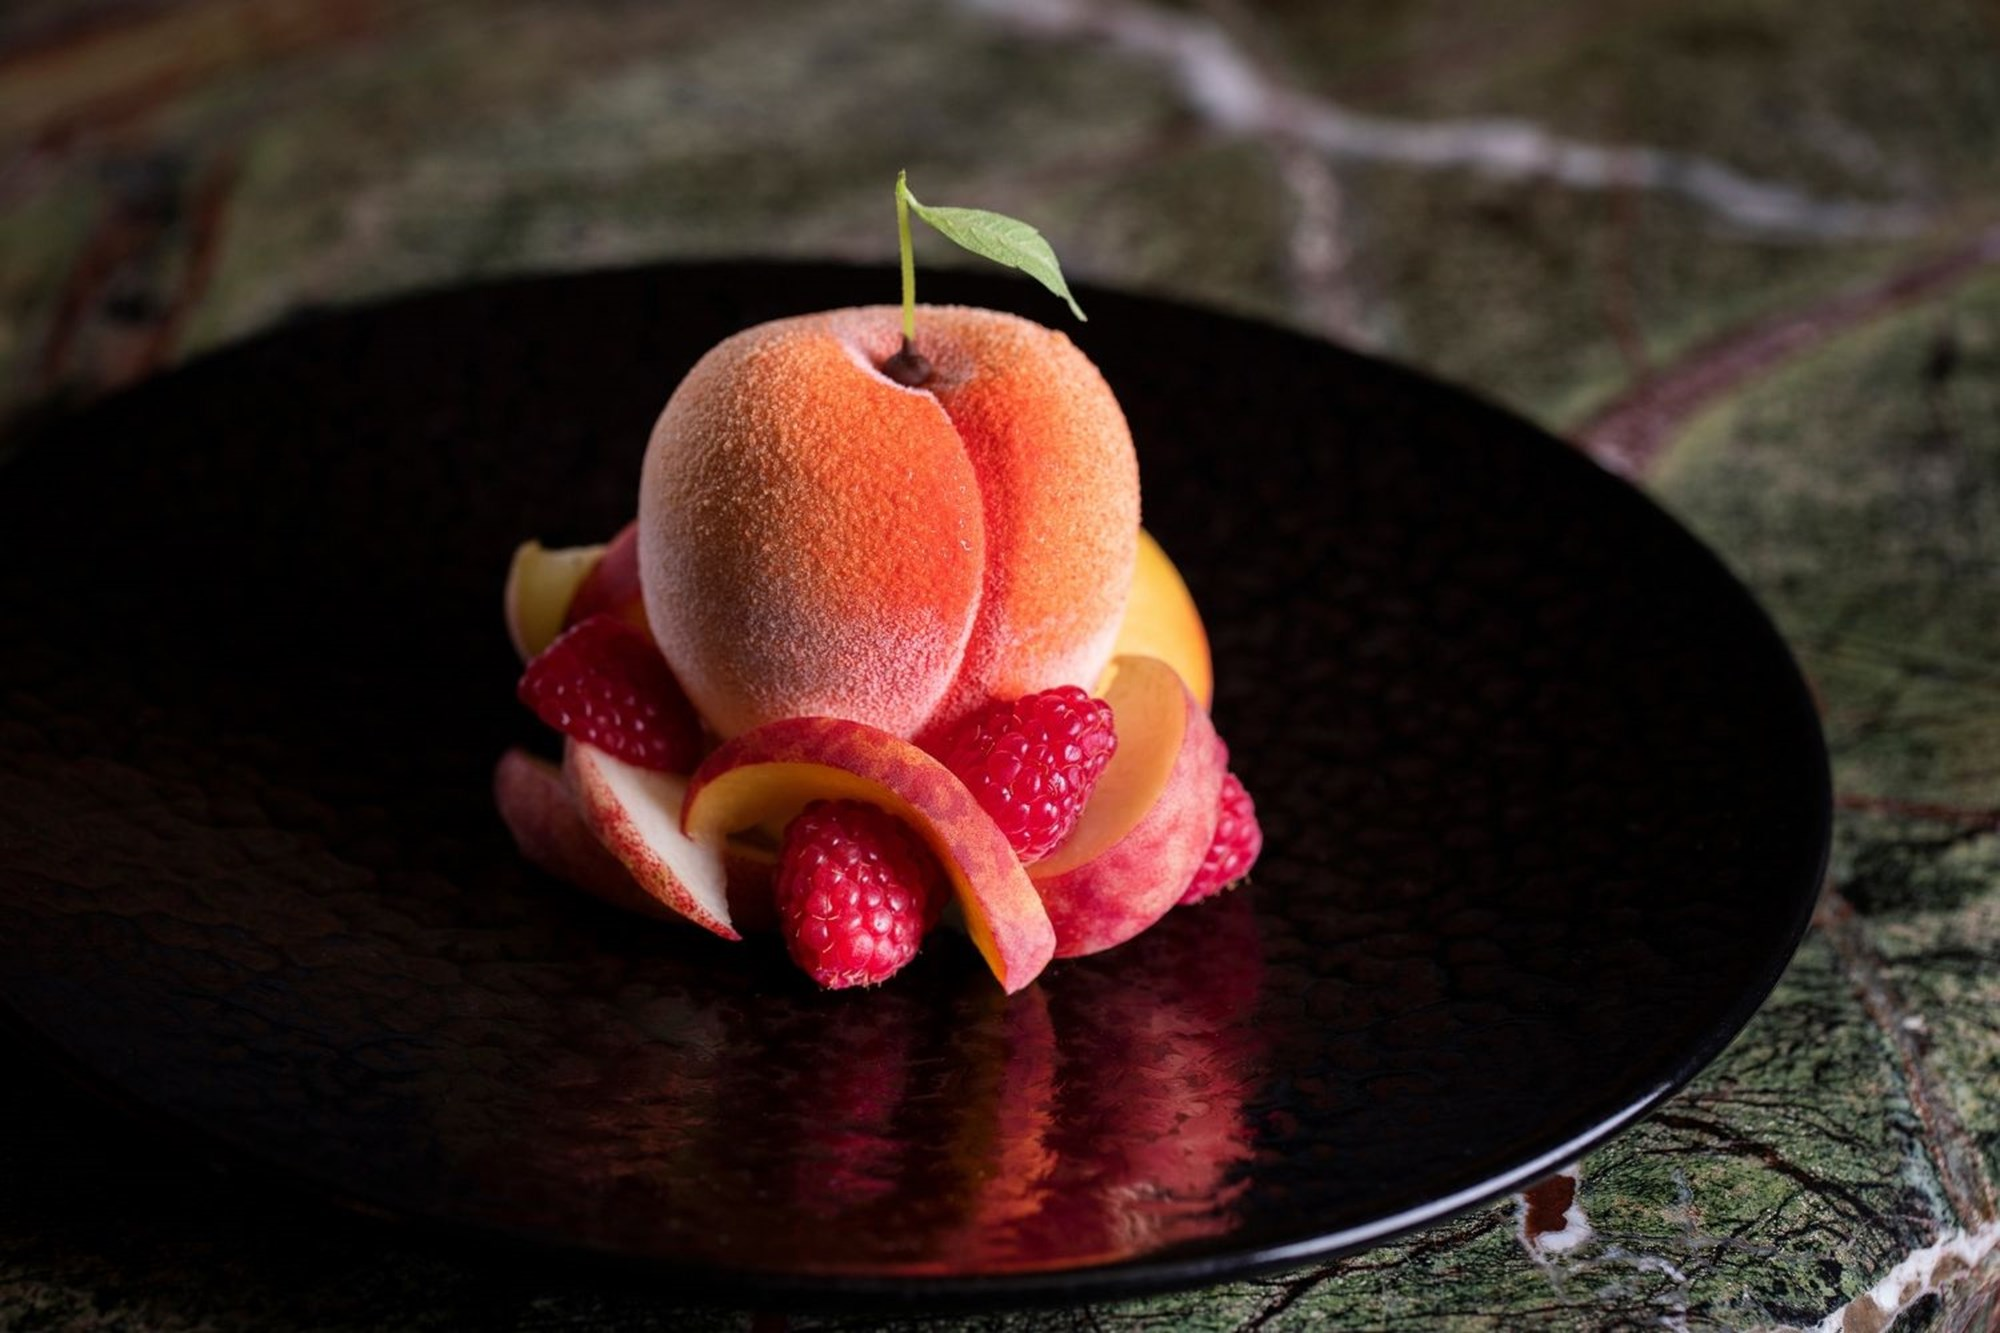 Peach dessert available at Scott's restaurant in Central London